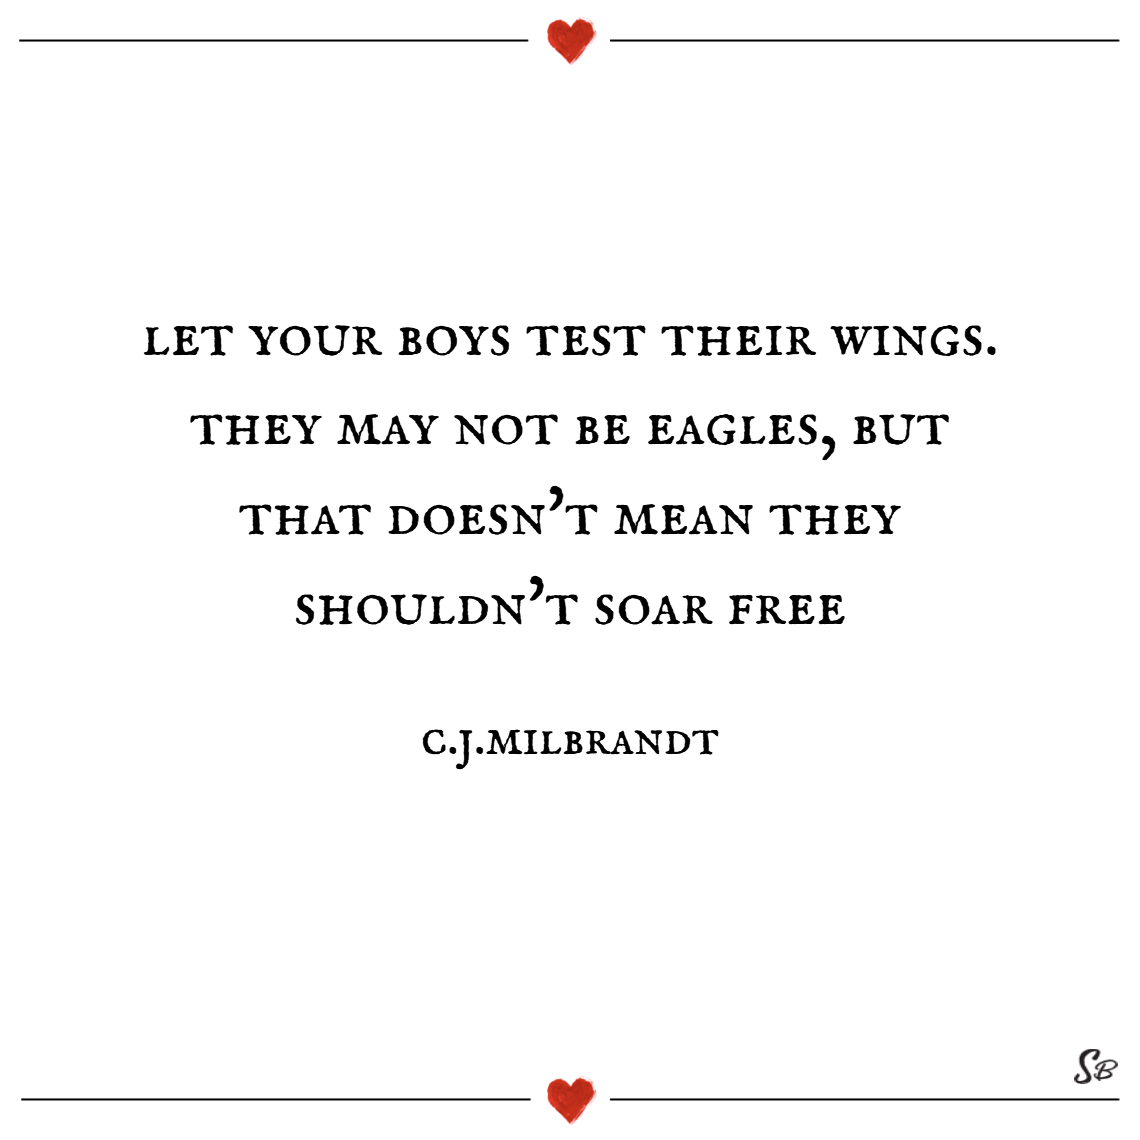 Let your boys test their wings. they may not be eagles, but that doesn't mean they shouldn't soar free. – c.j. milbrandt